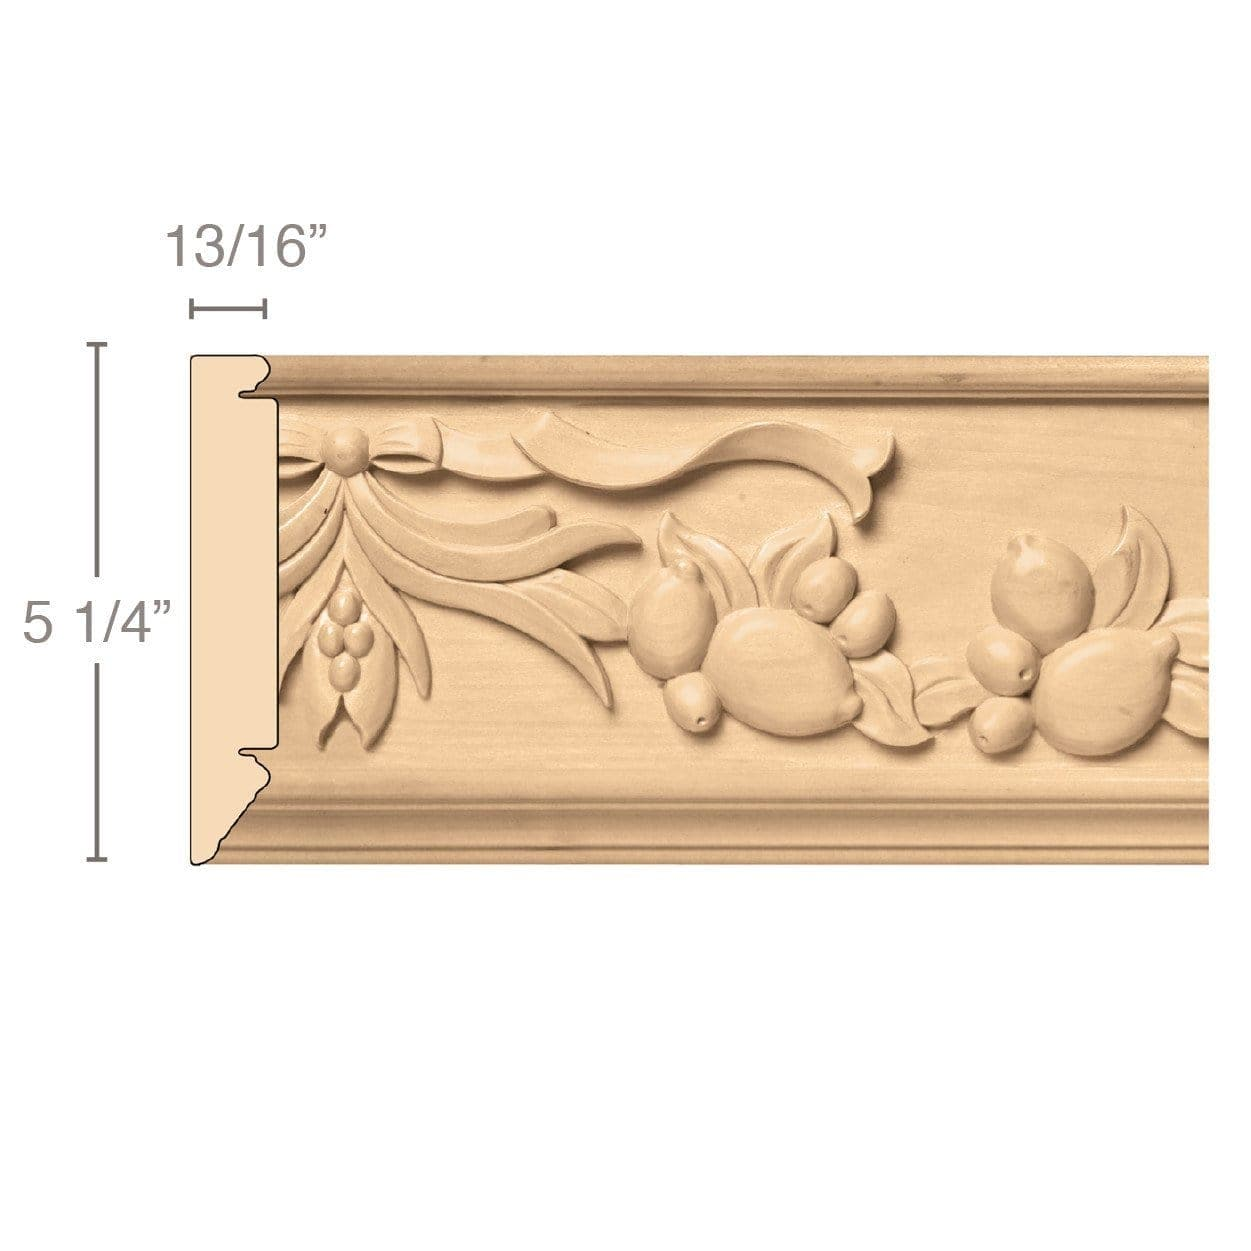 Large Sicilian Frieze (Repeats 15 1/2), 5 1/4''w x 13/16''d x 8' length, Resin is priced per 8' length